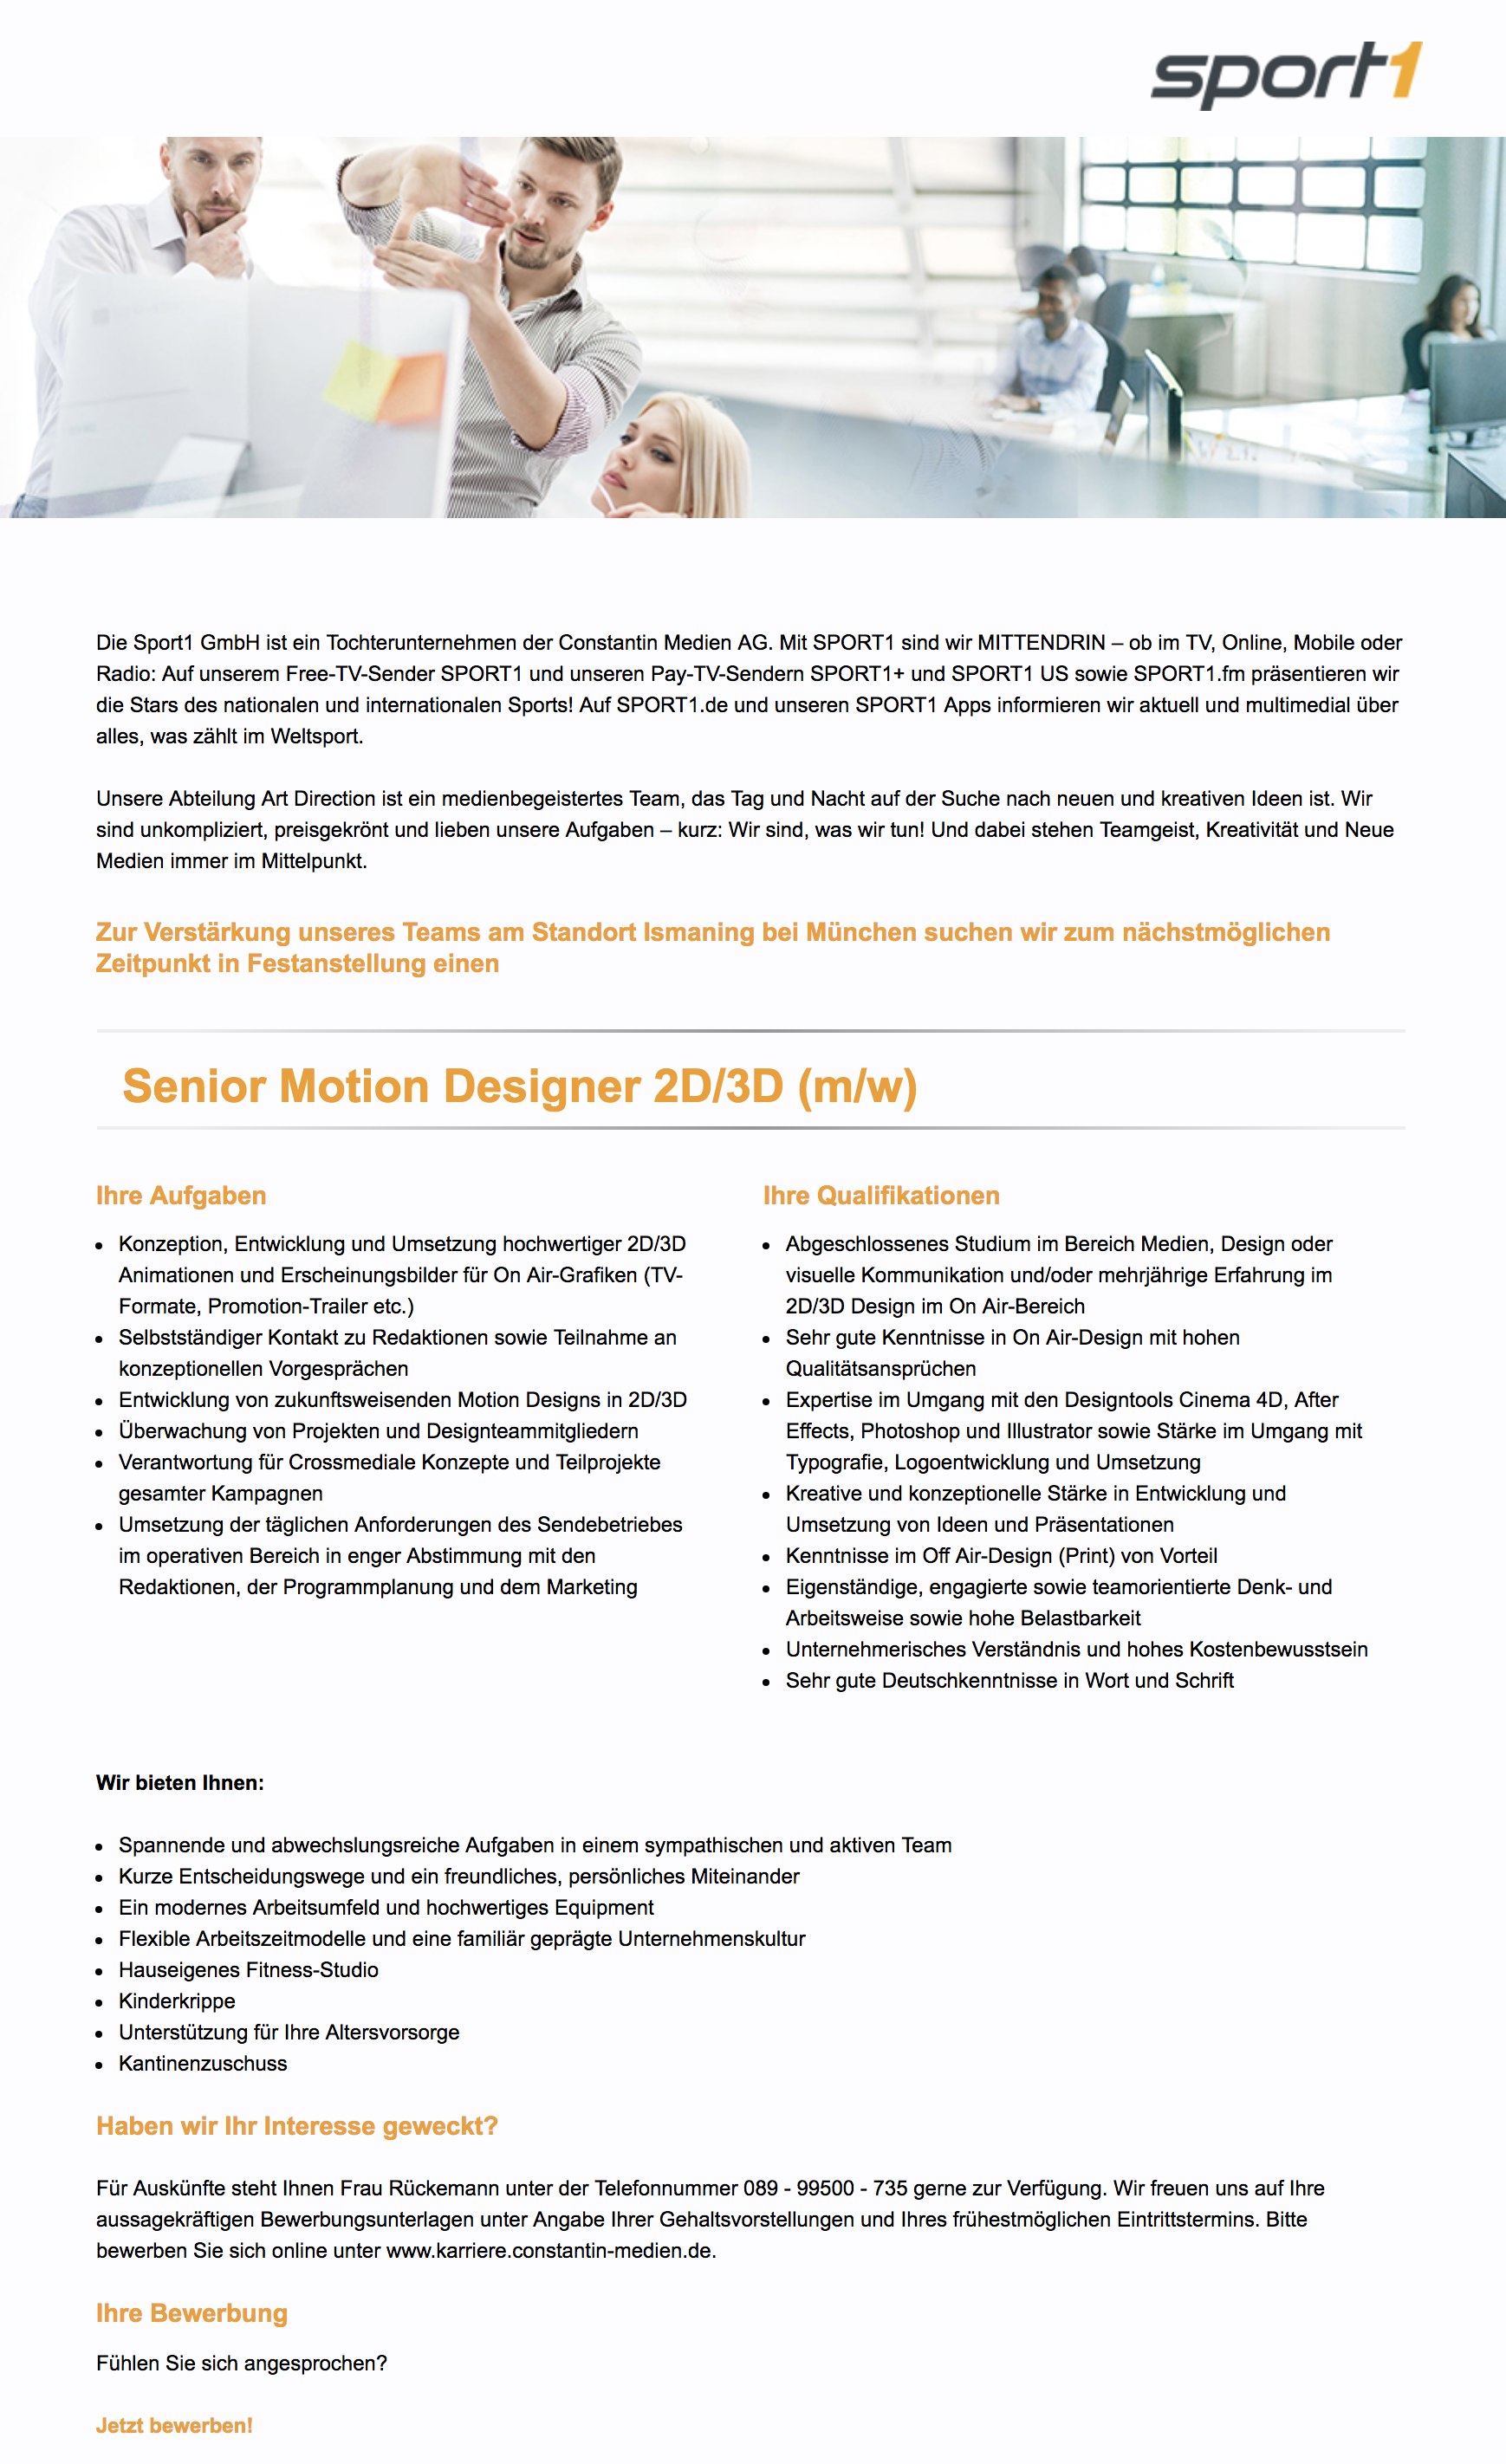 Senior Motion Designer 2D/3D (m/w)